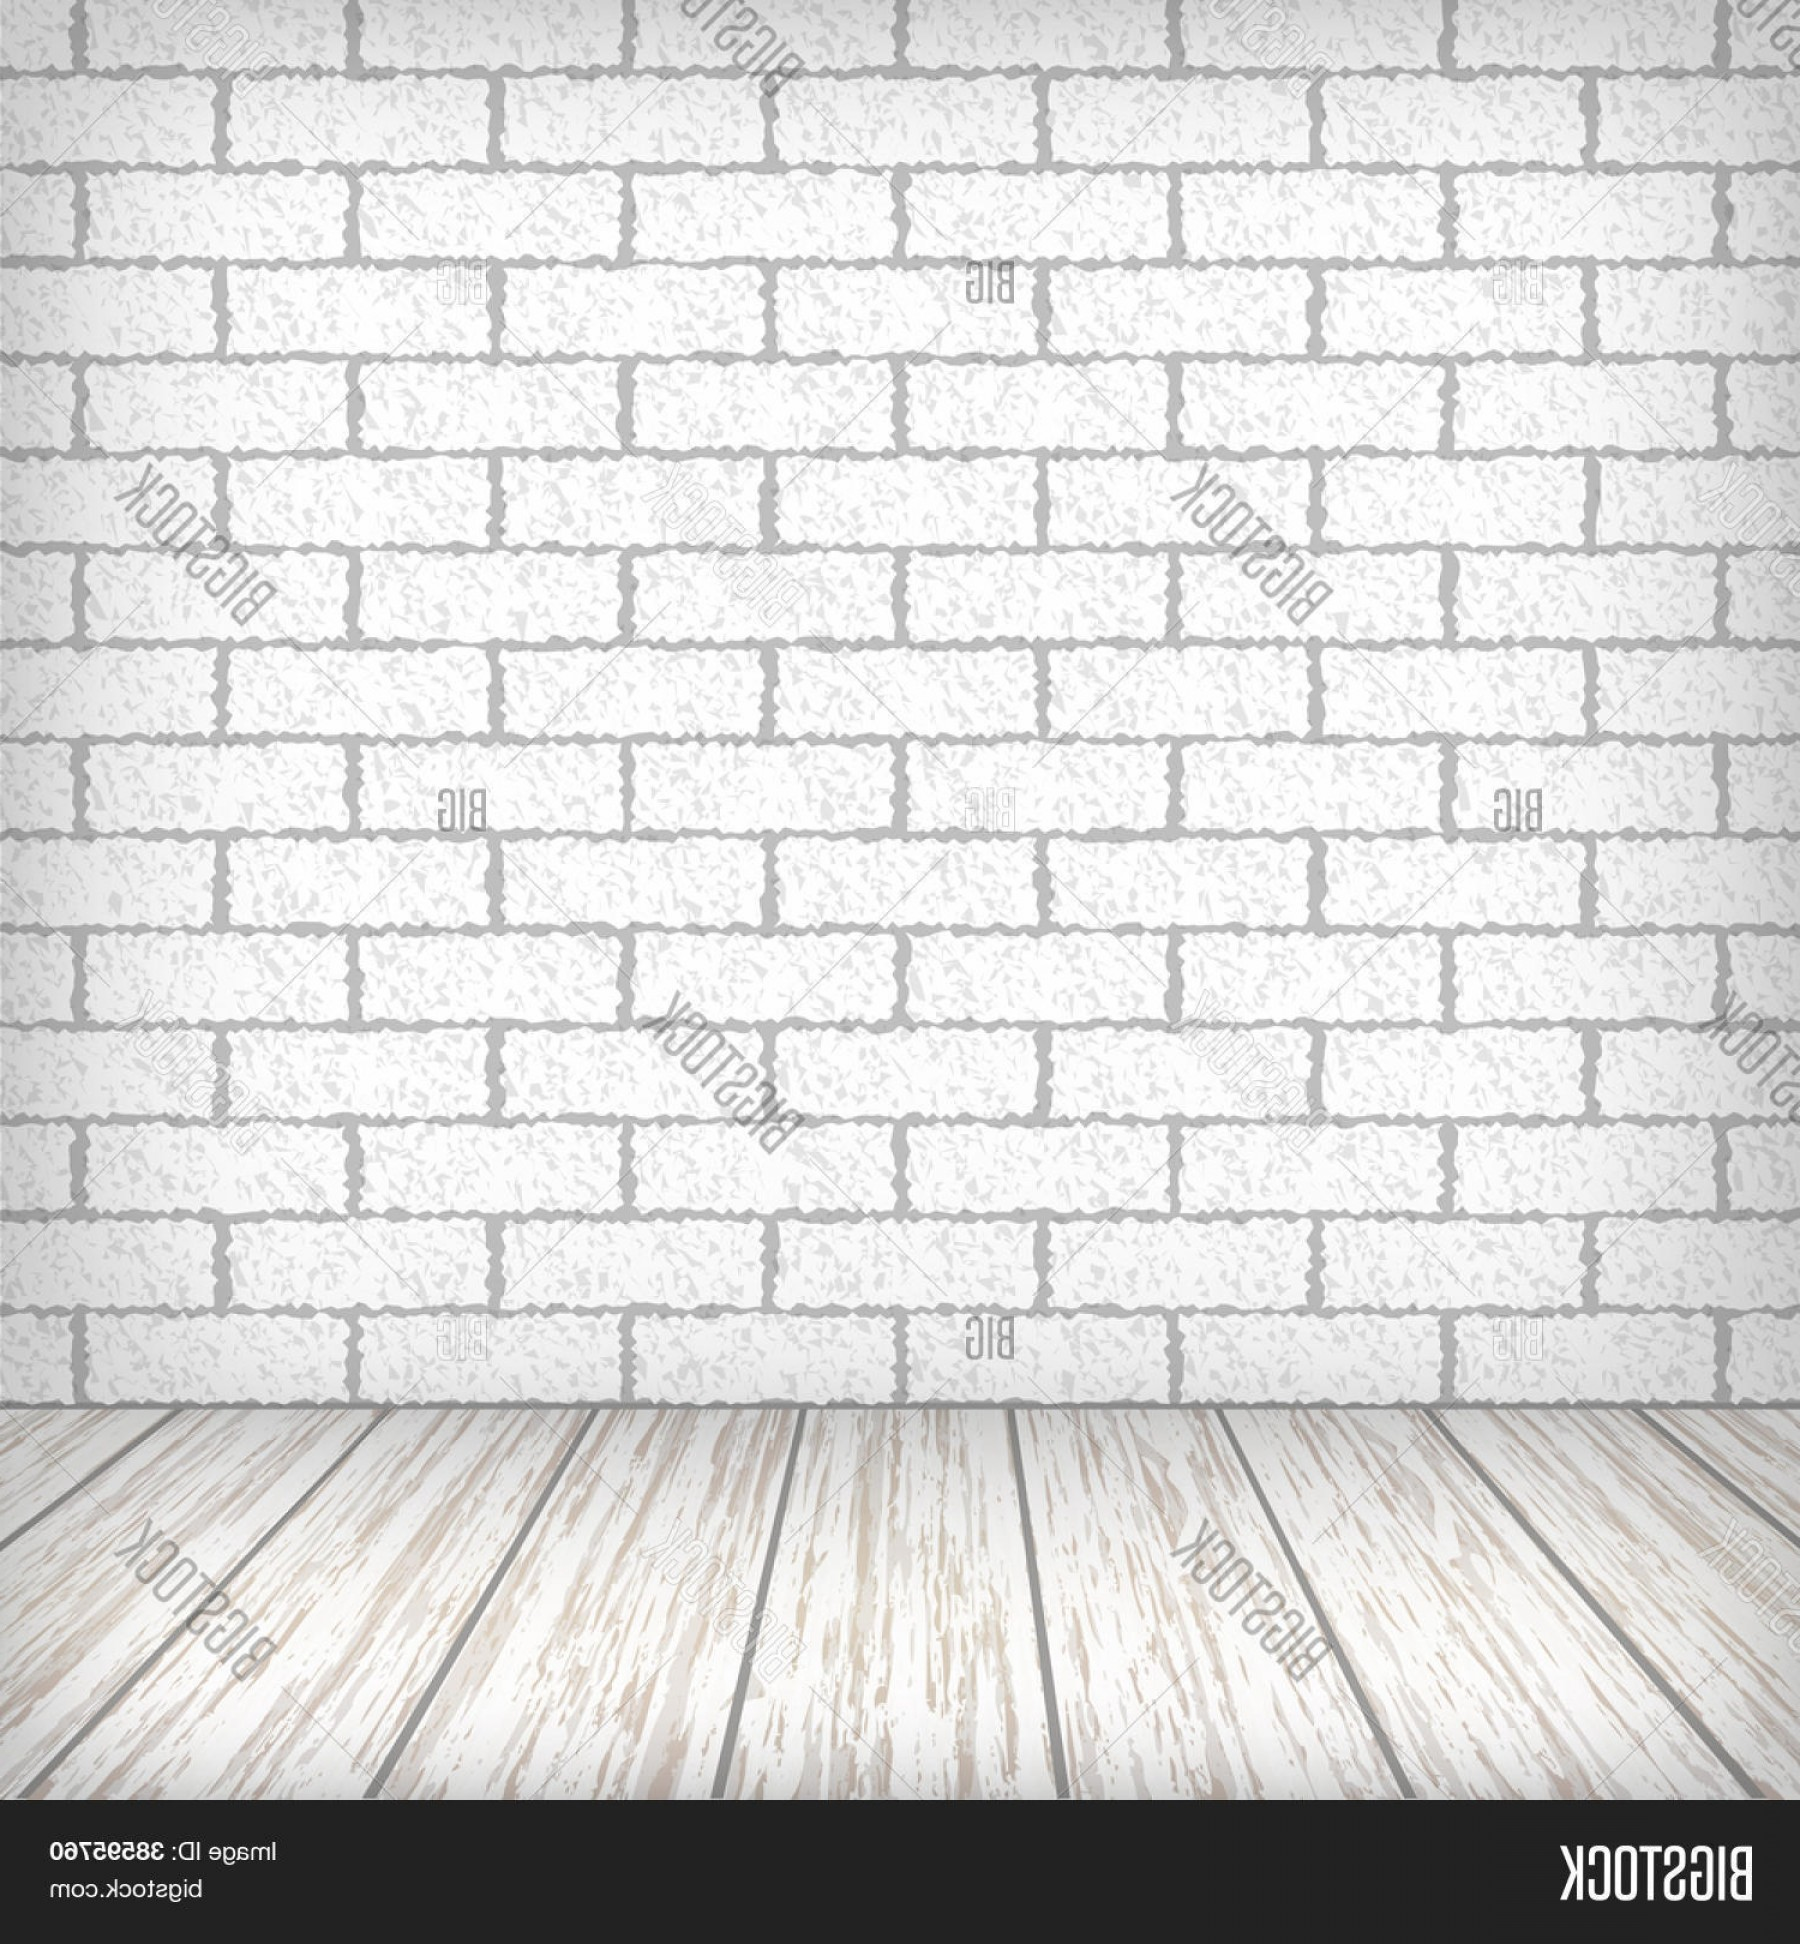 Vector Black Wood Floor: Stock Vector White Brick Wall With Wooden Floor In A Vintage Interior Vector Eps Illustration